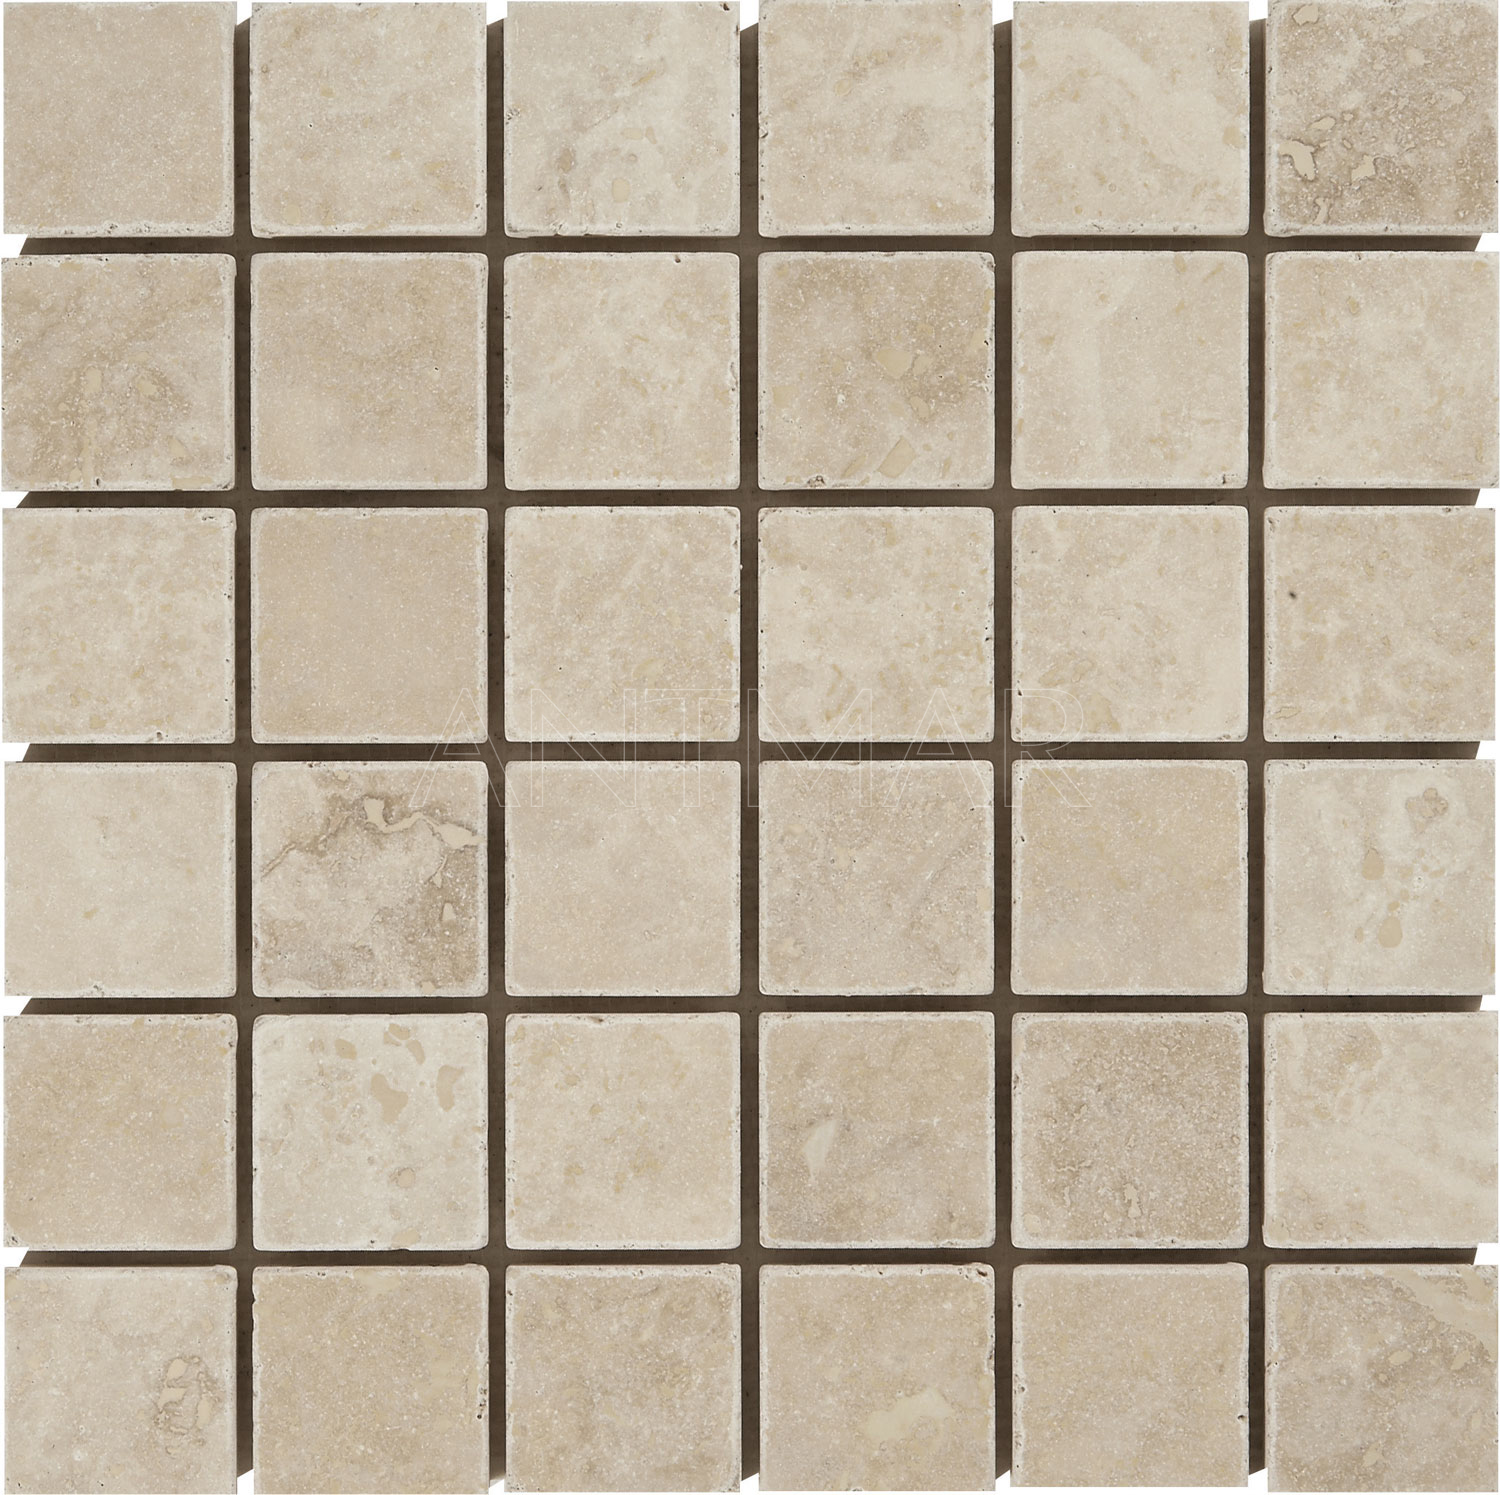 Travertin 4.8×4.8×1 Mosaique Vieilli